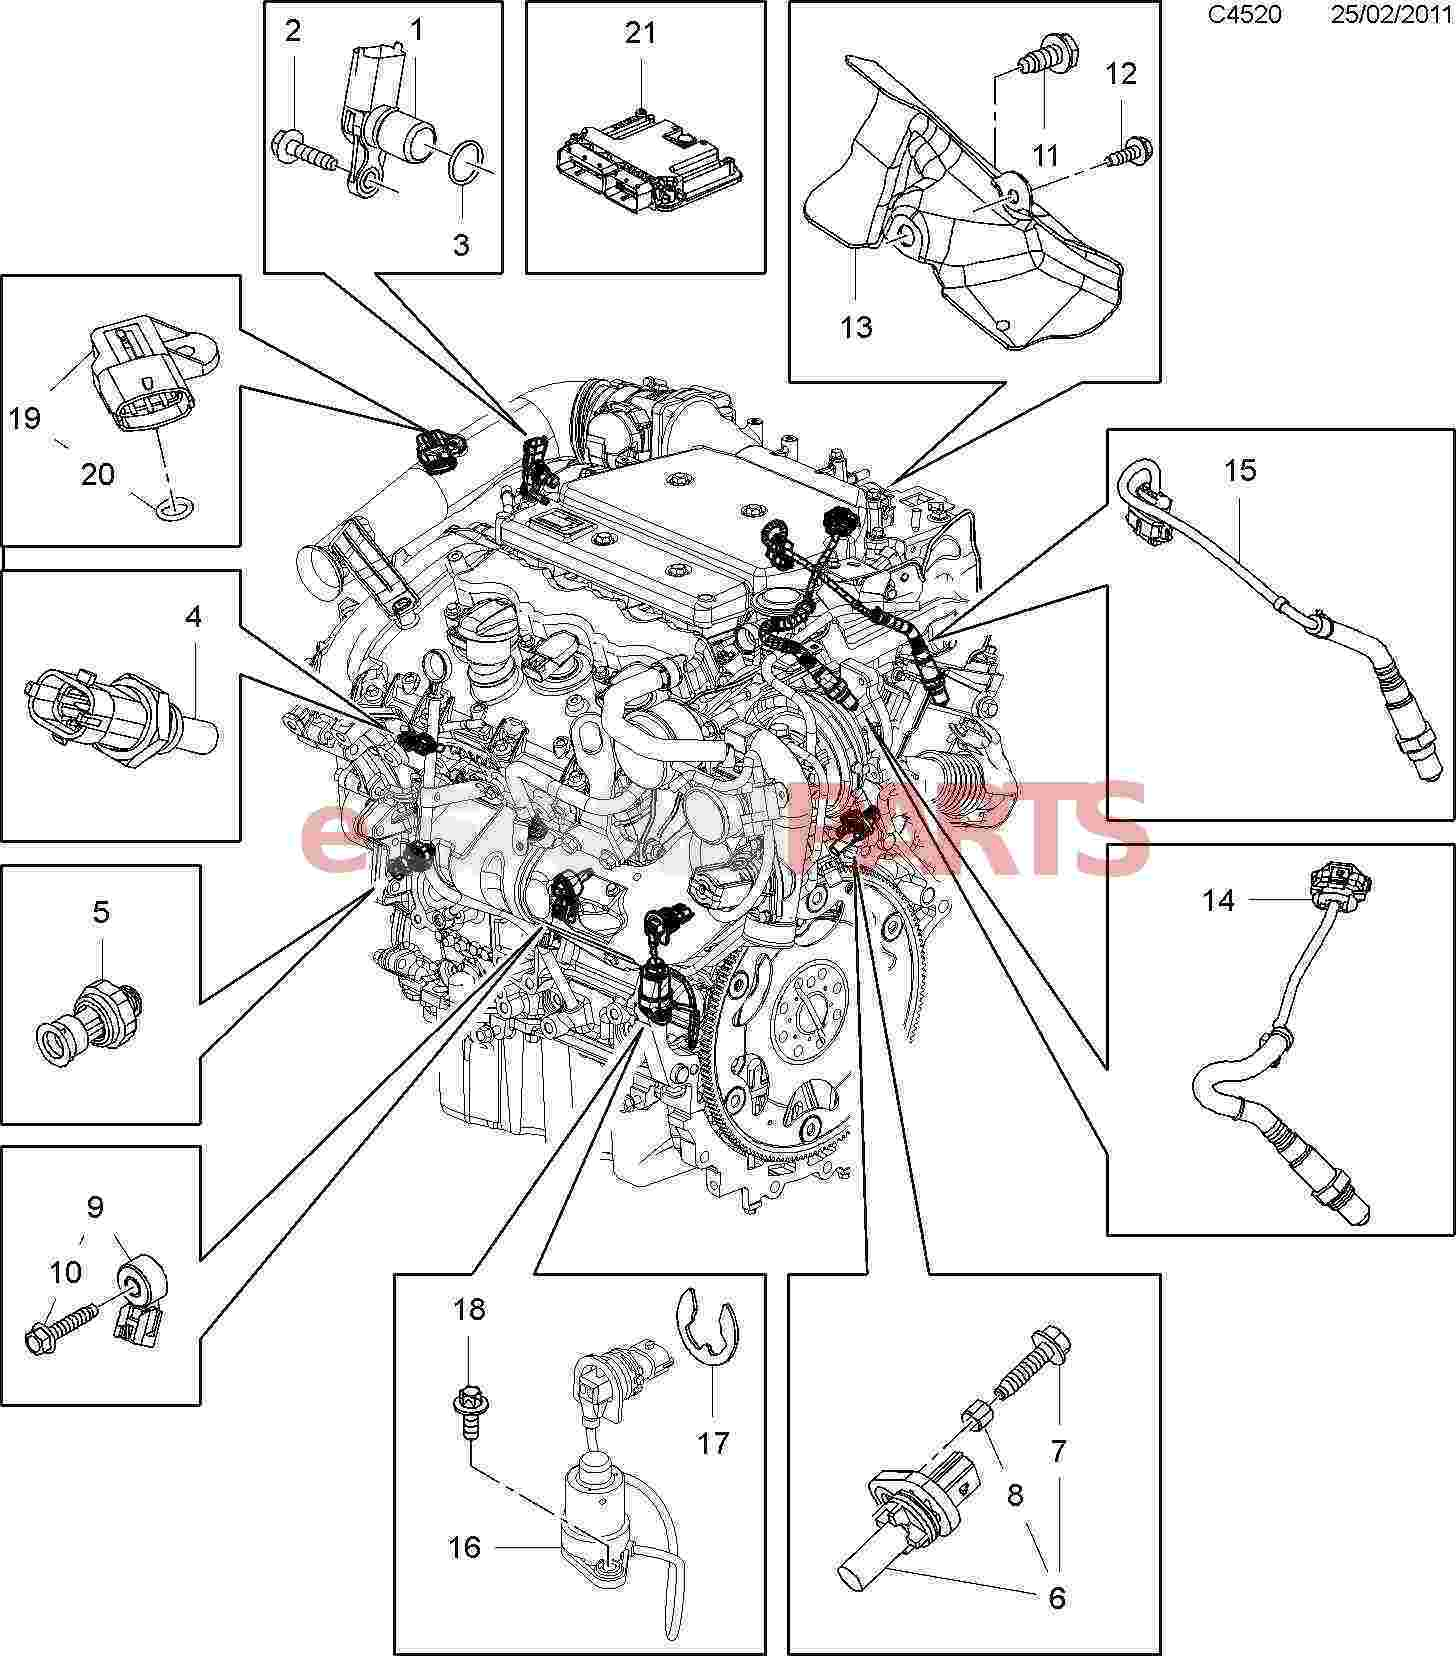 saab 92x engine diagram schematics wiring diagrams u2022 rh seniorlivinguniversity co